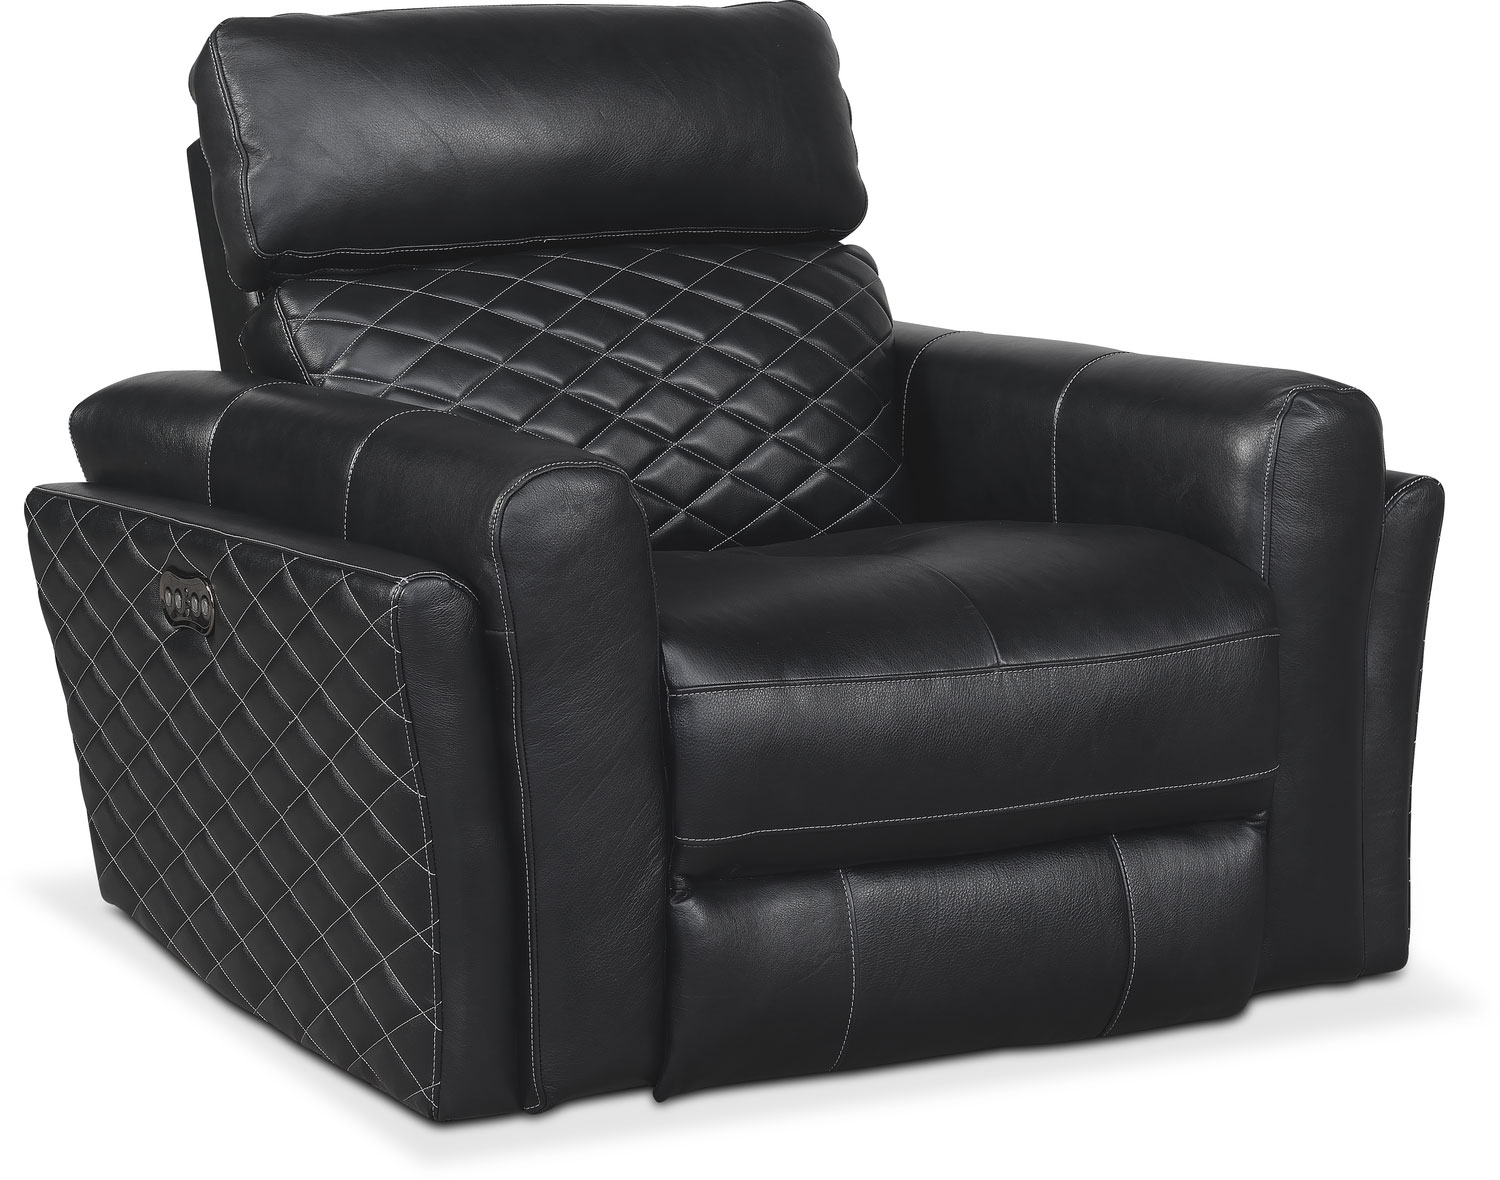 Value City Chairs Catalina Power Recliner